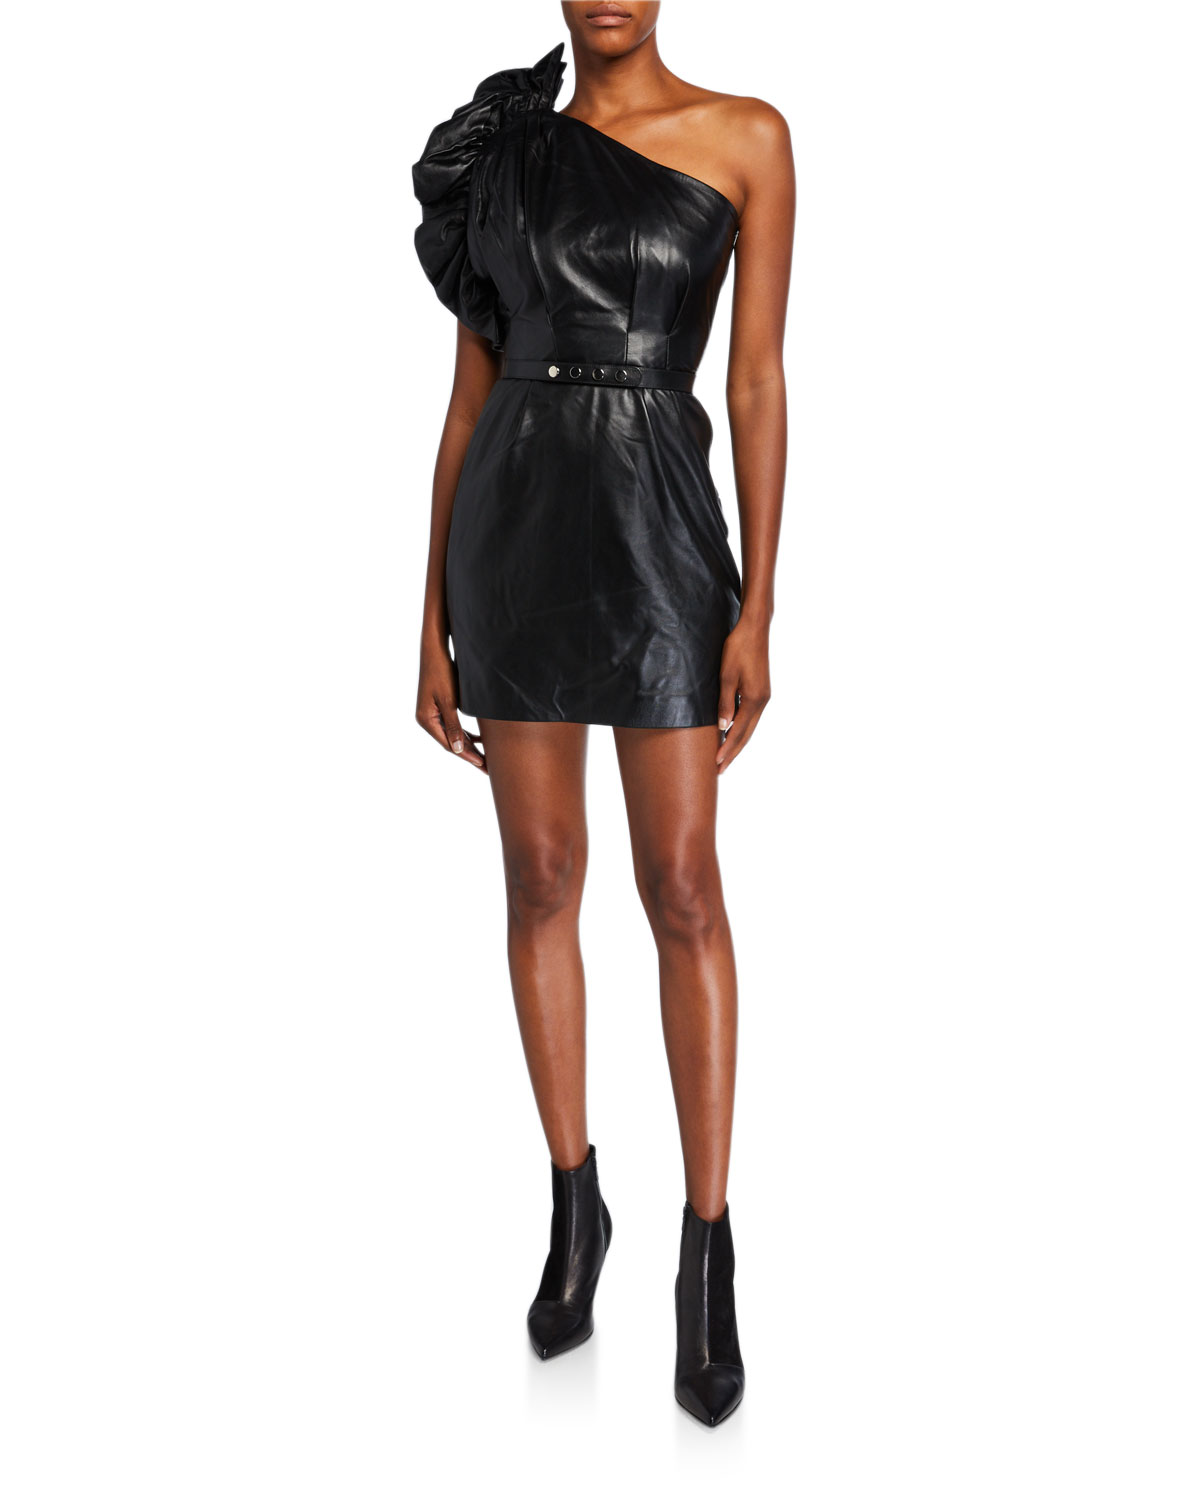 Nour Hammour Talia Leather One-Shoulder Mini Dress